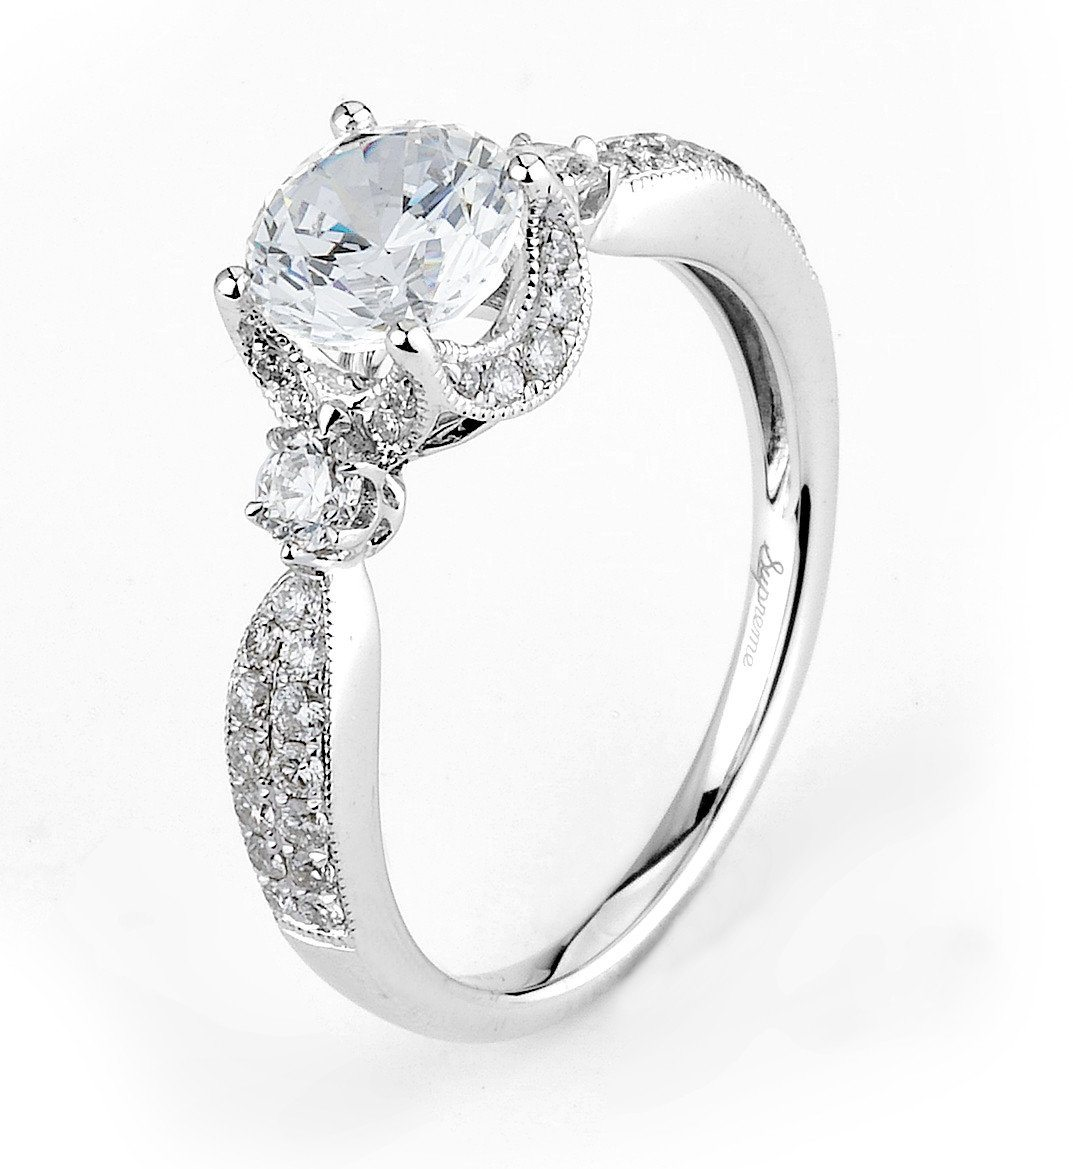 Supreme - SJU1285RS, Engagement Ring, Supreme Jewelry - Birmingham Jewelry